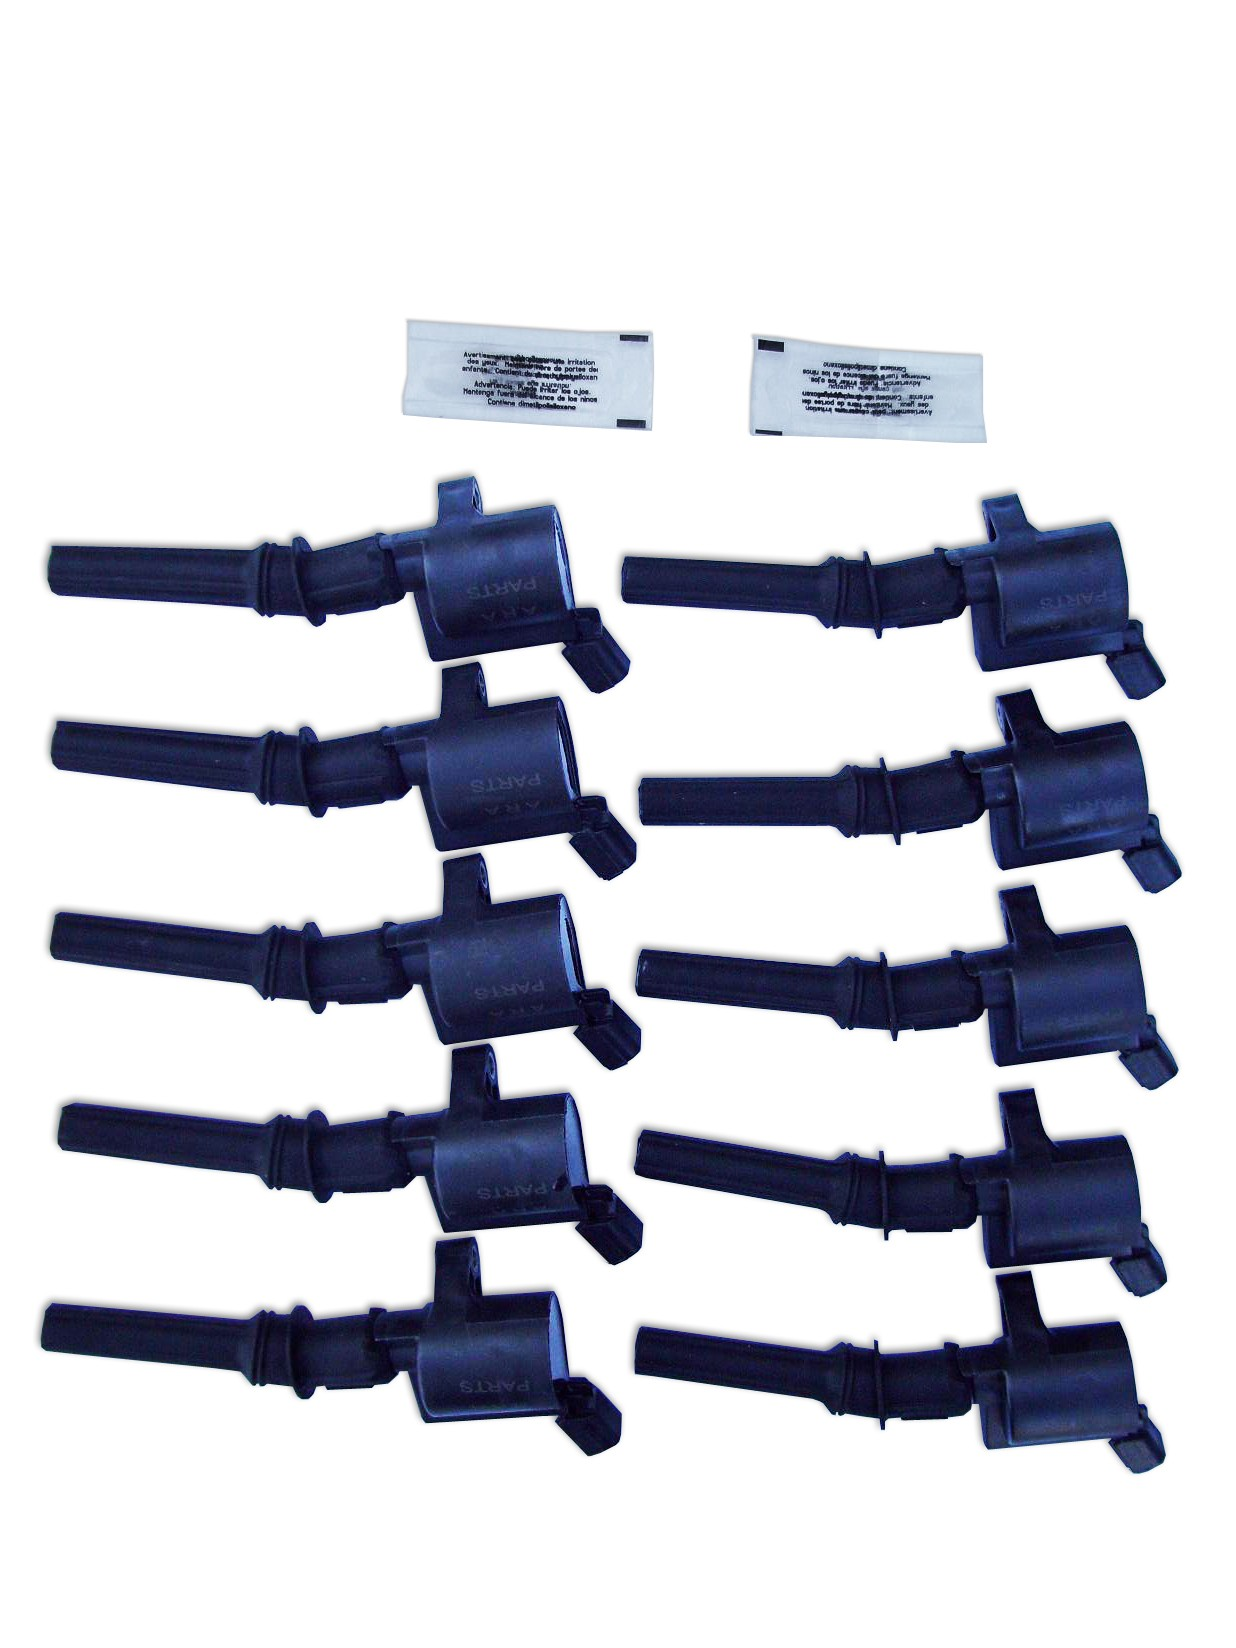 hight resolution of 99 ford explorer coil pack